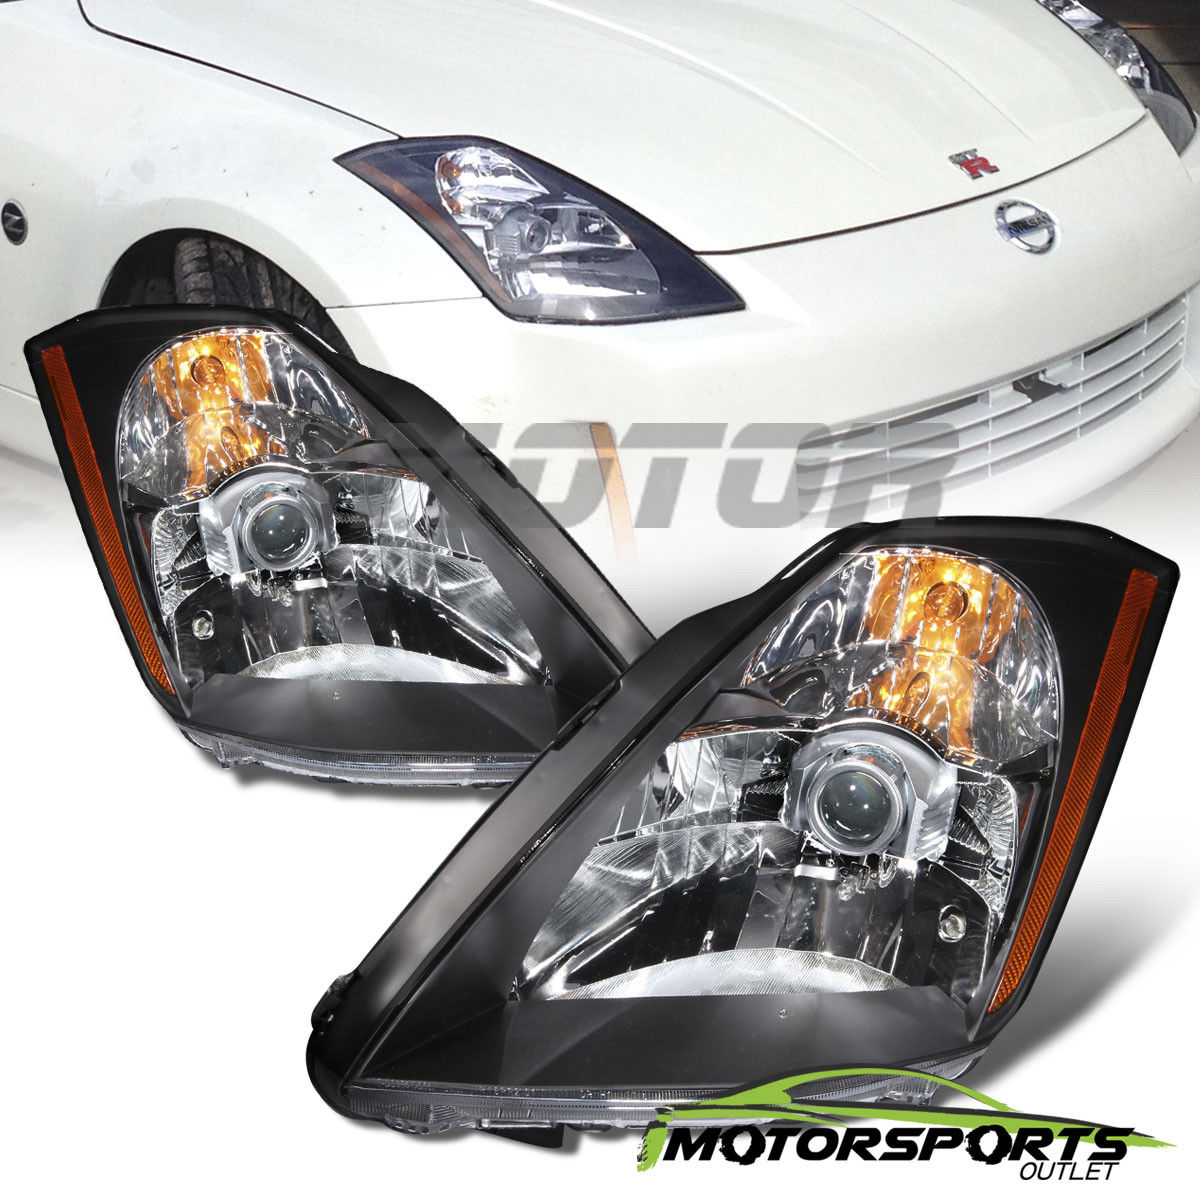 Awesome For 2003 2004 2005 Nissan 350z Coupe Z33 Fairlady Black Projector Headlights Set 2018 2019